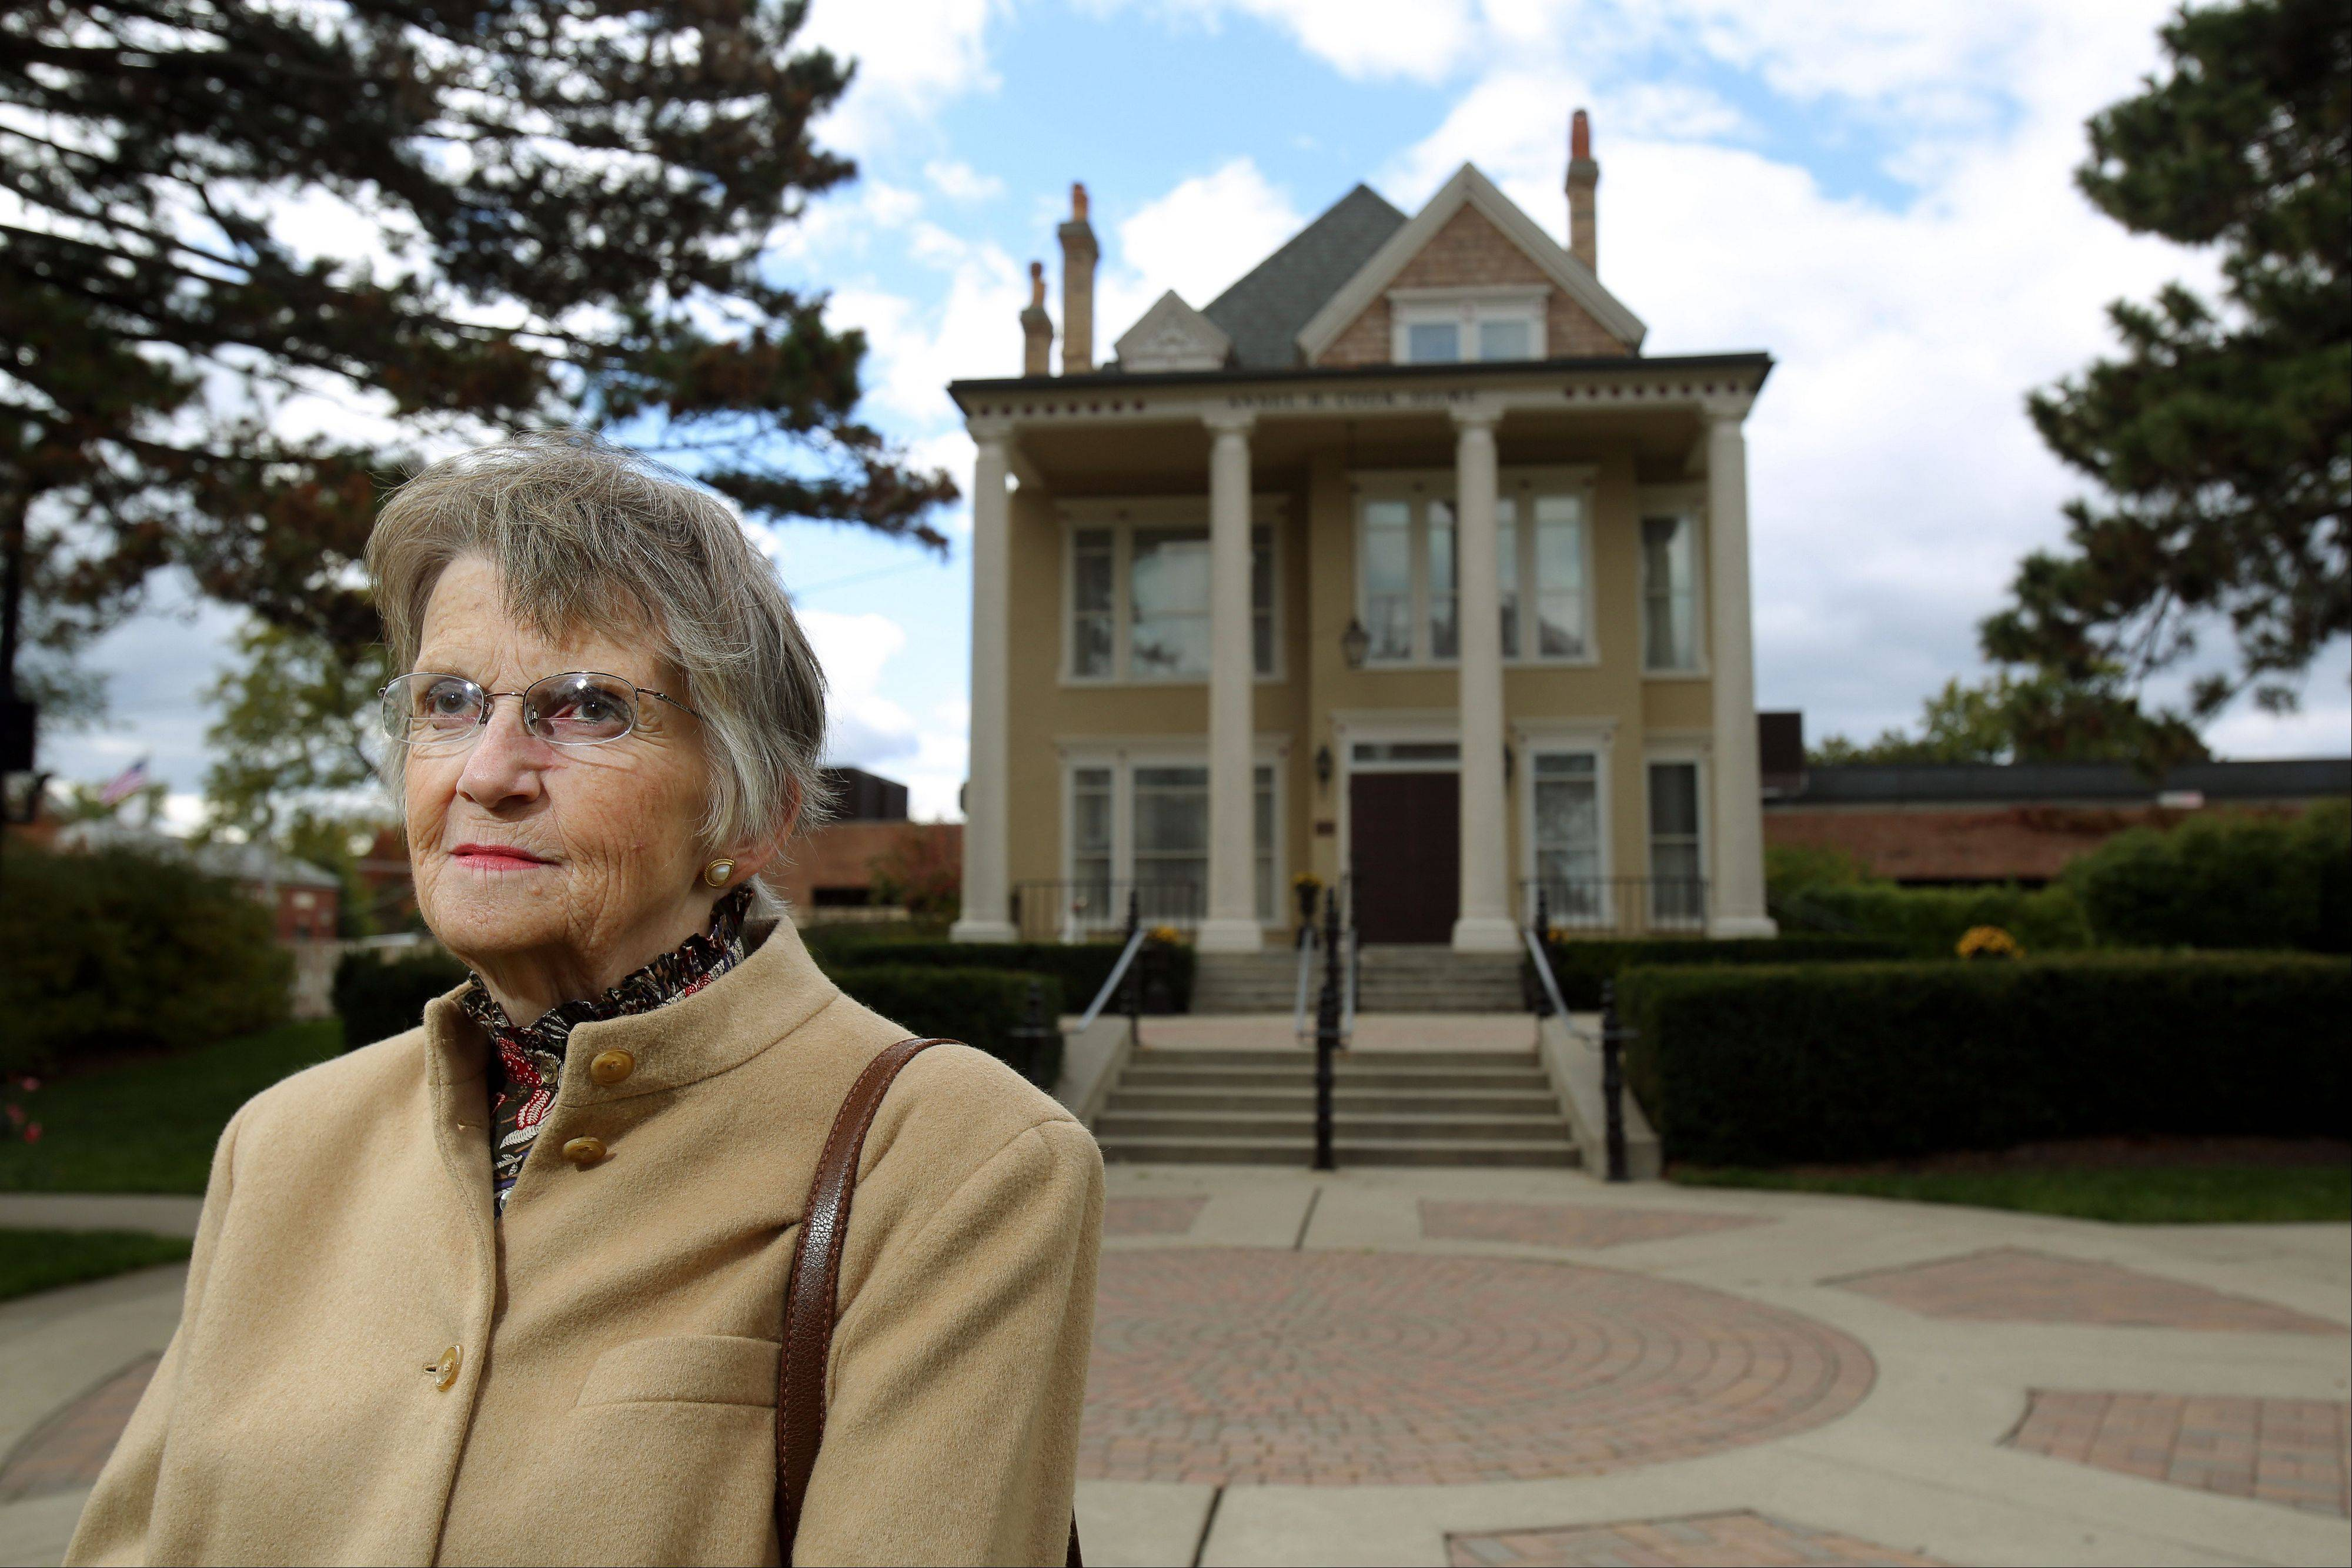 Phyllis Eggert of Libertyville remembers Sen. John F. Kennedy's visit to Libertyville in October 1960.